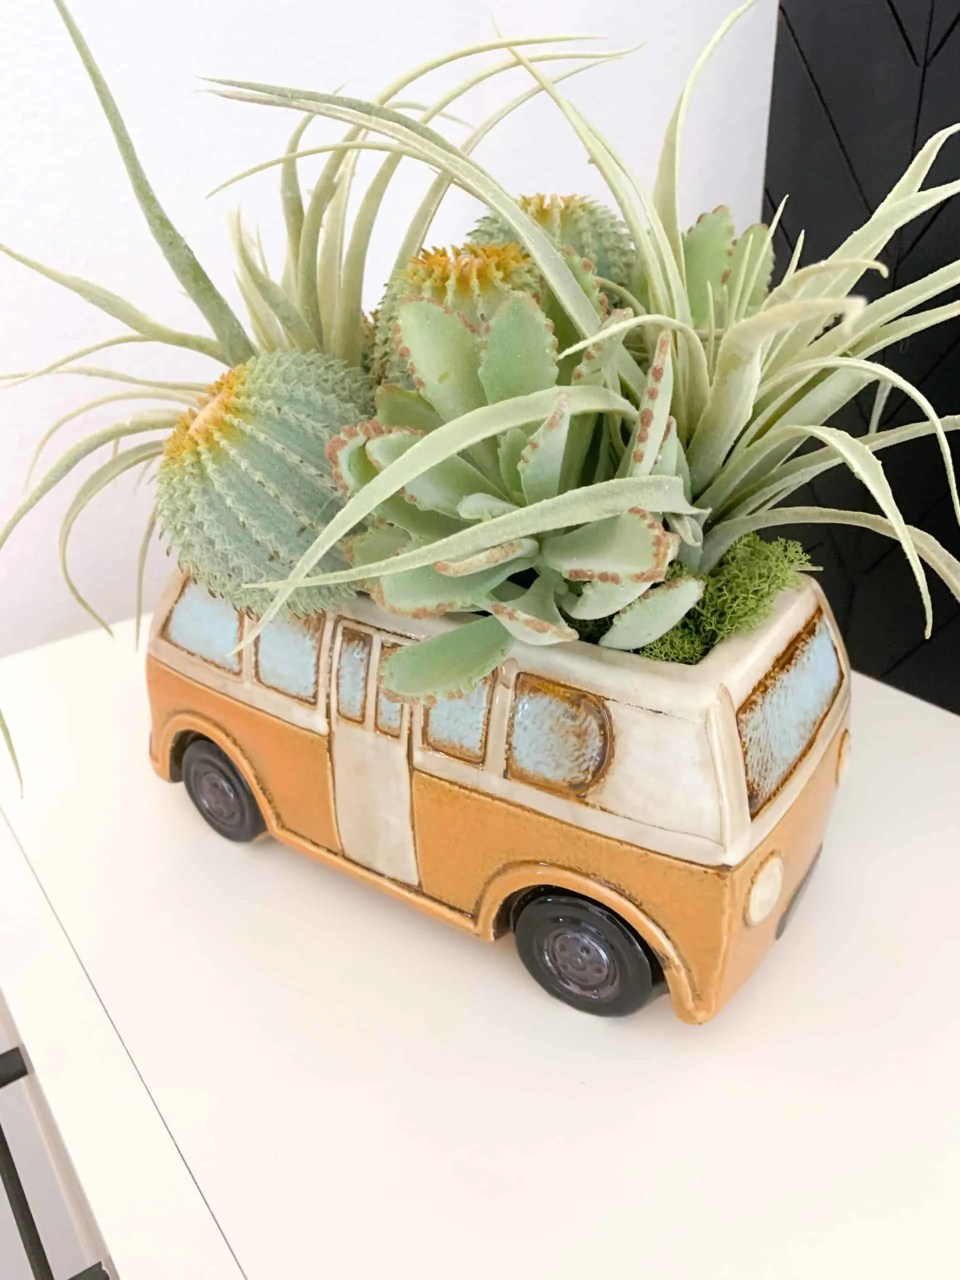 Car shaped planter for succulents in boys bedroom